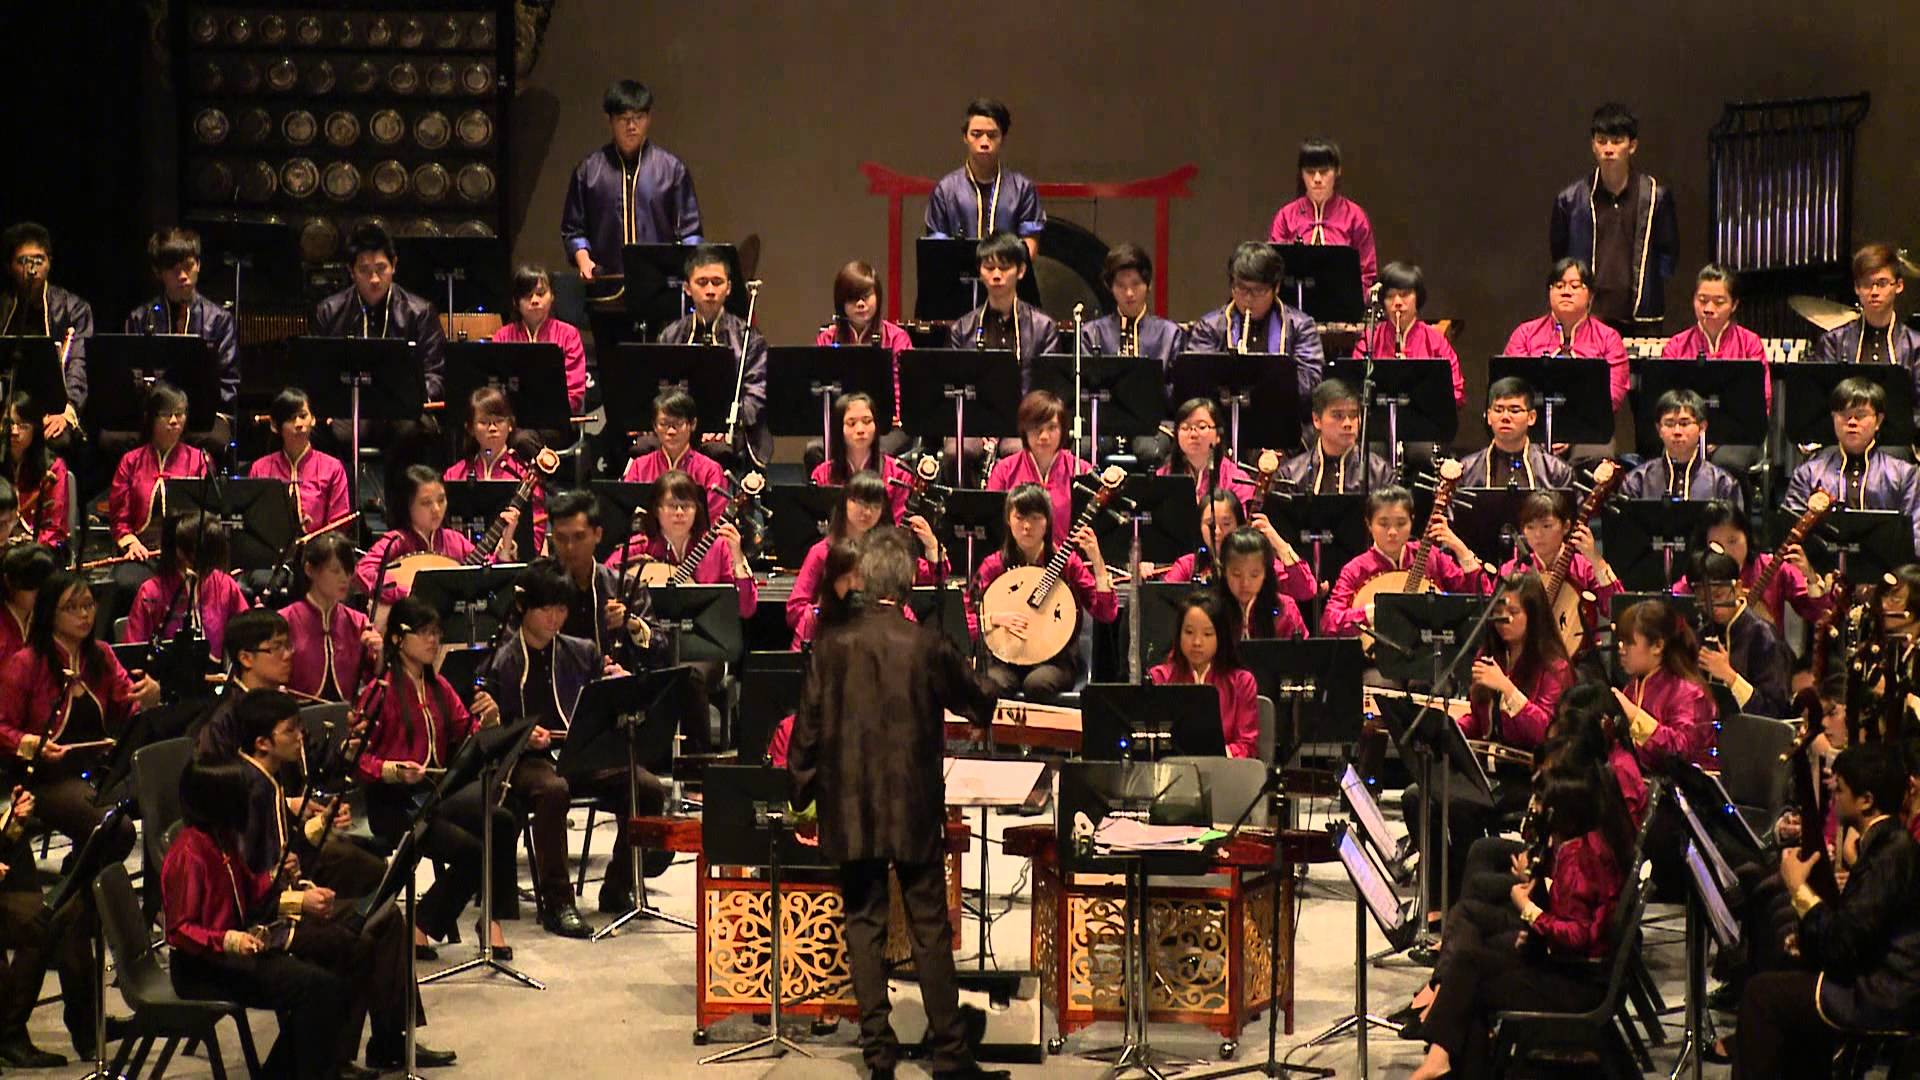 chineseorchestra_1920x1080